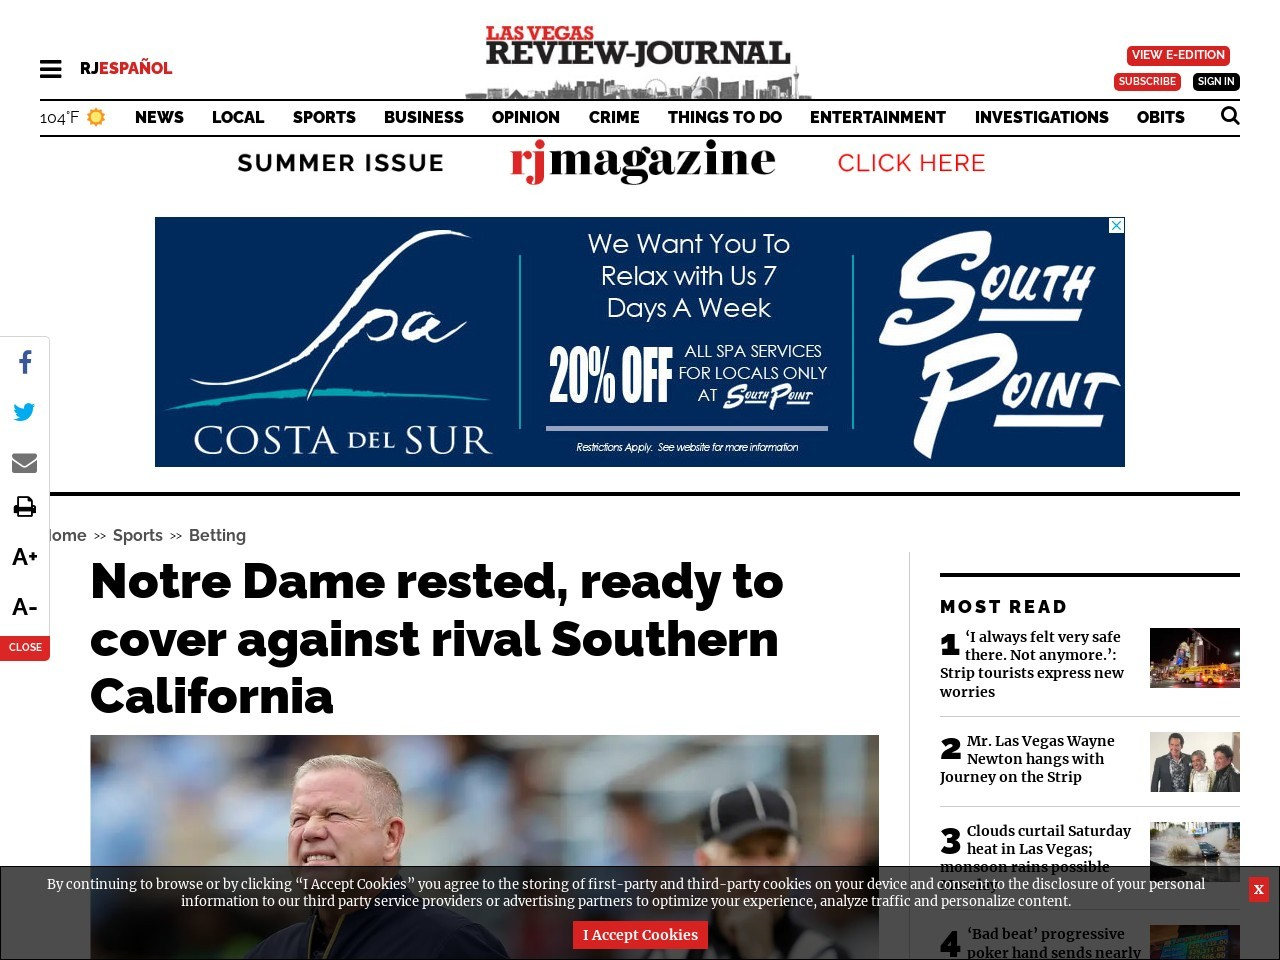 Notre Dame rested, ready to cover against rival Southern California